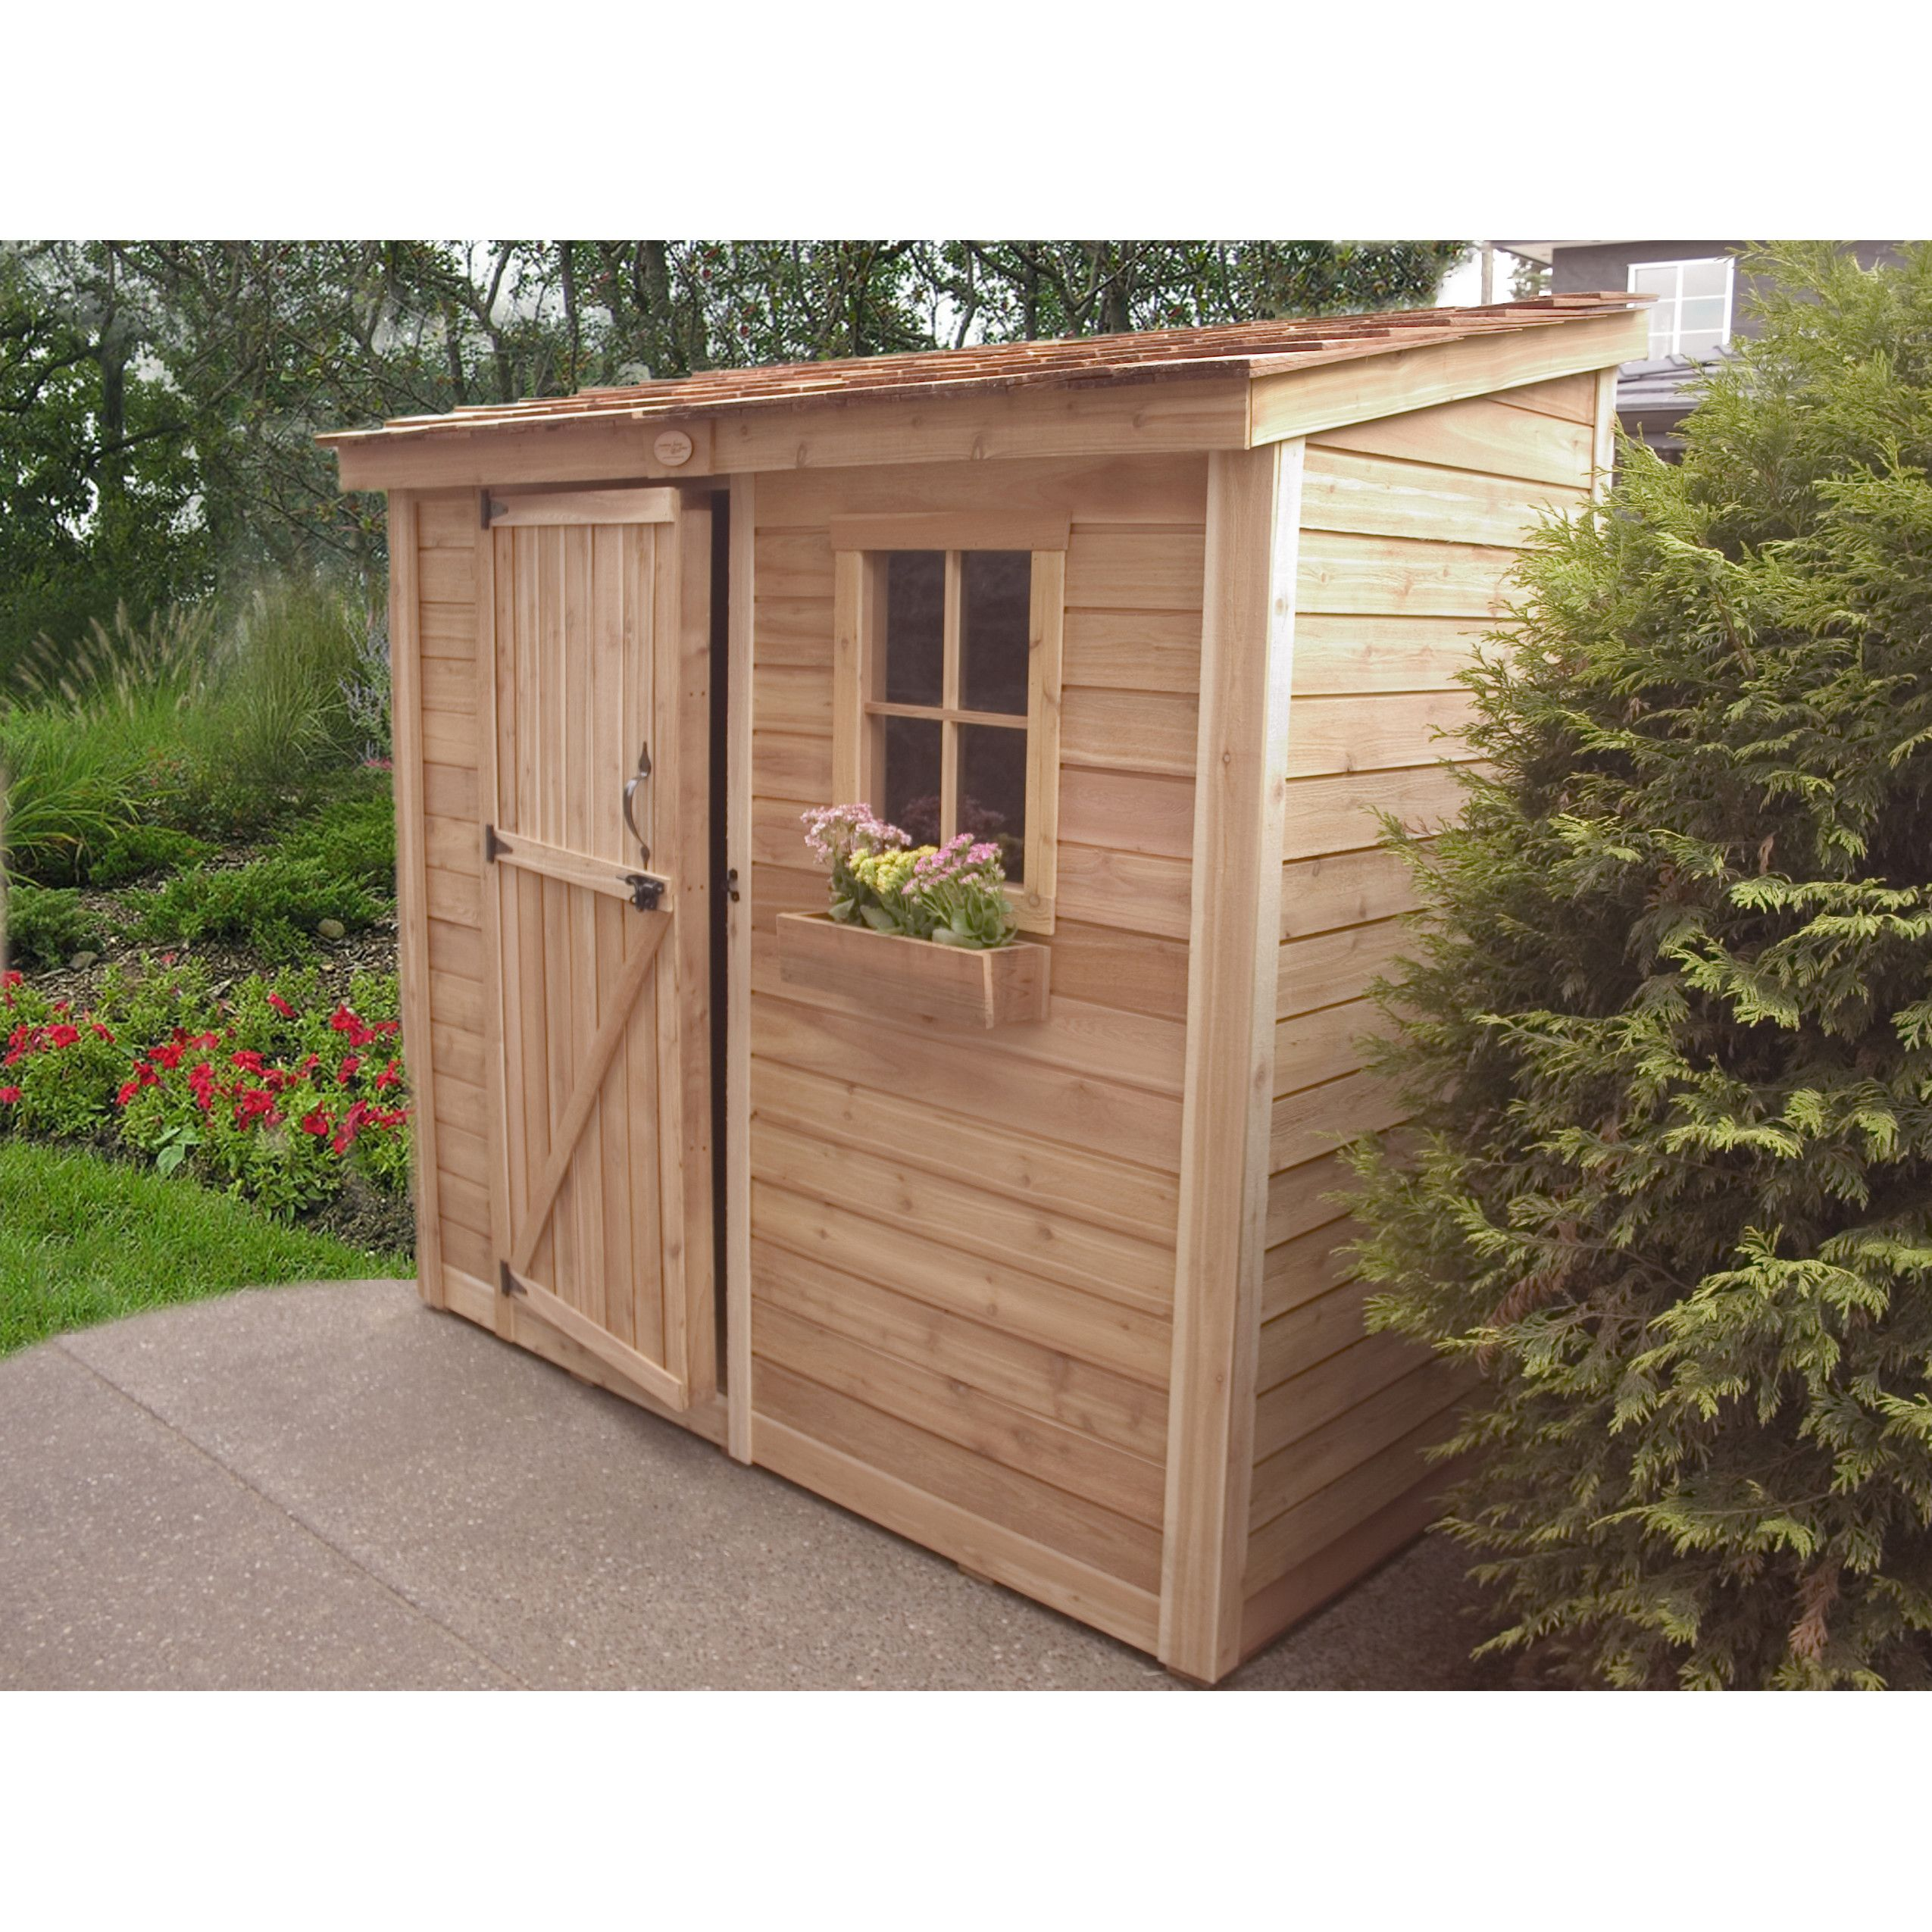 spacesaver 8 58 ft w x 4 58 ft d wood lean to tool shed d